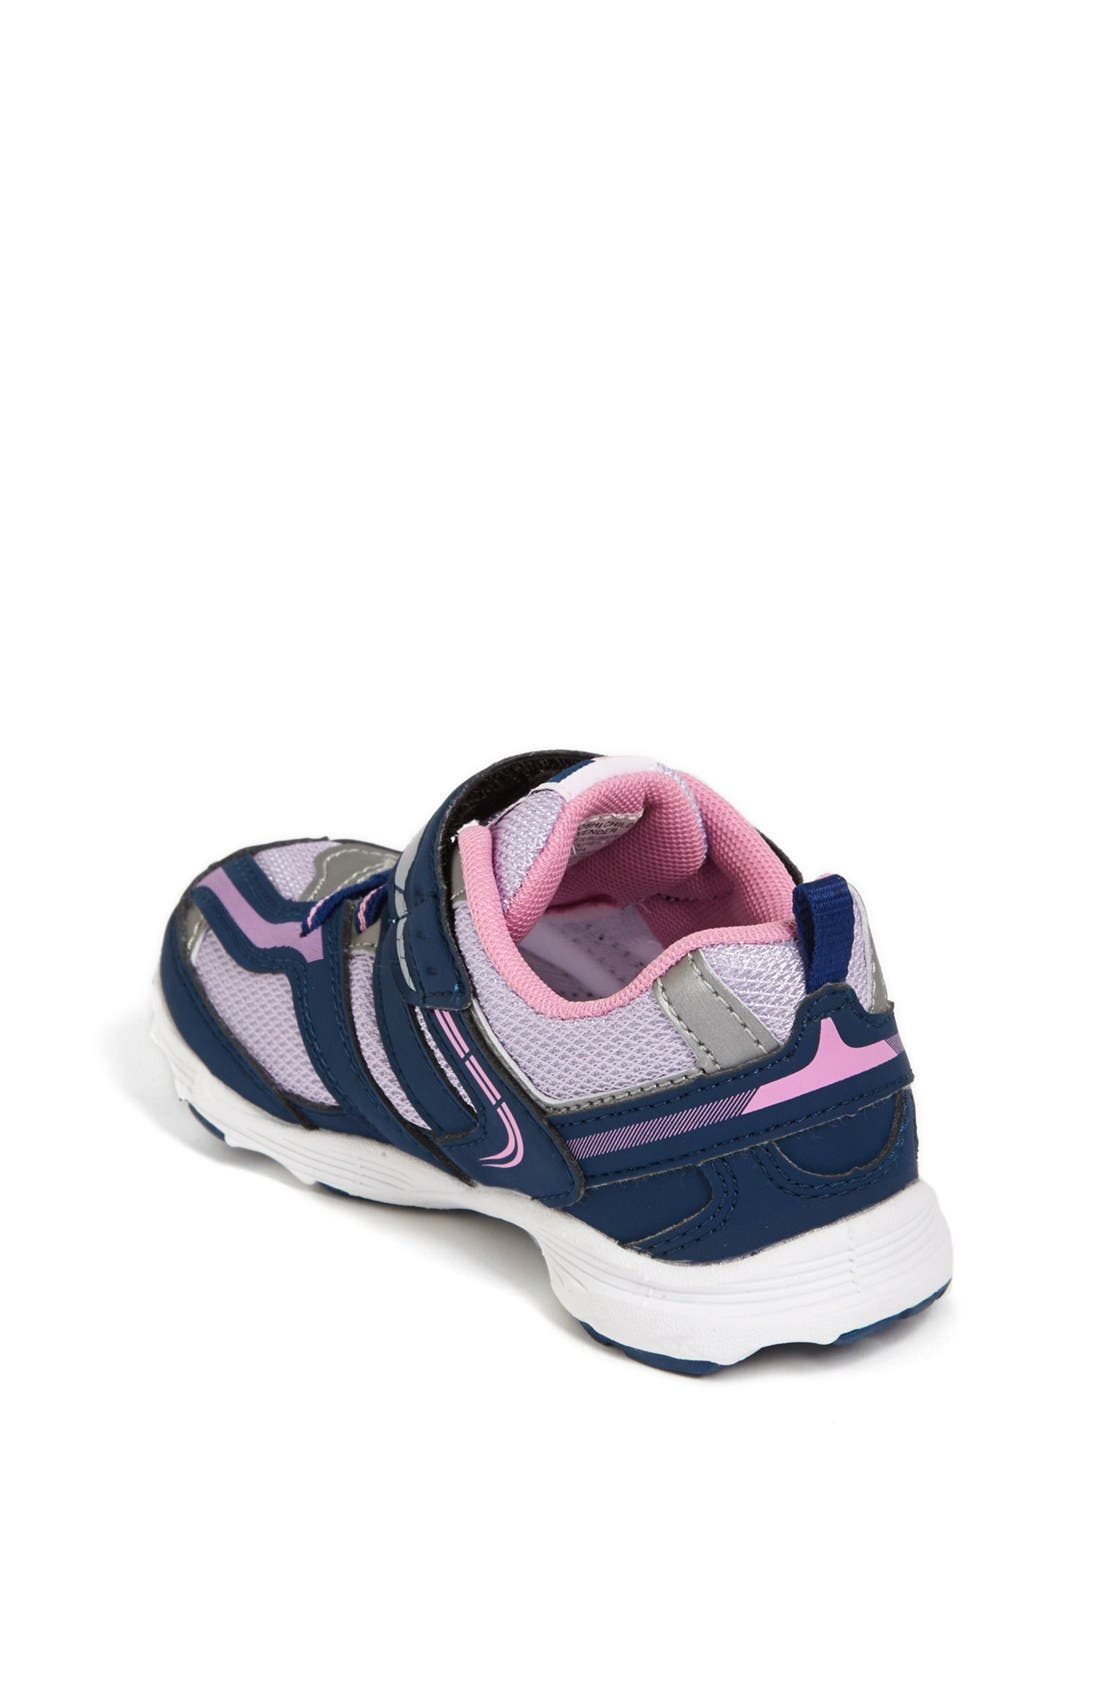 Alternate Image 2  - Tsukihoshi 'Child 36' Sneaker (Toddler & Little Kid)